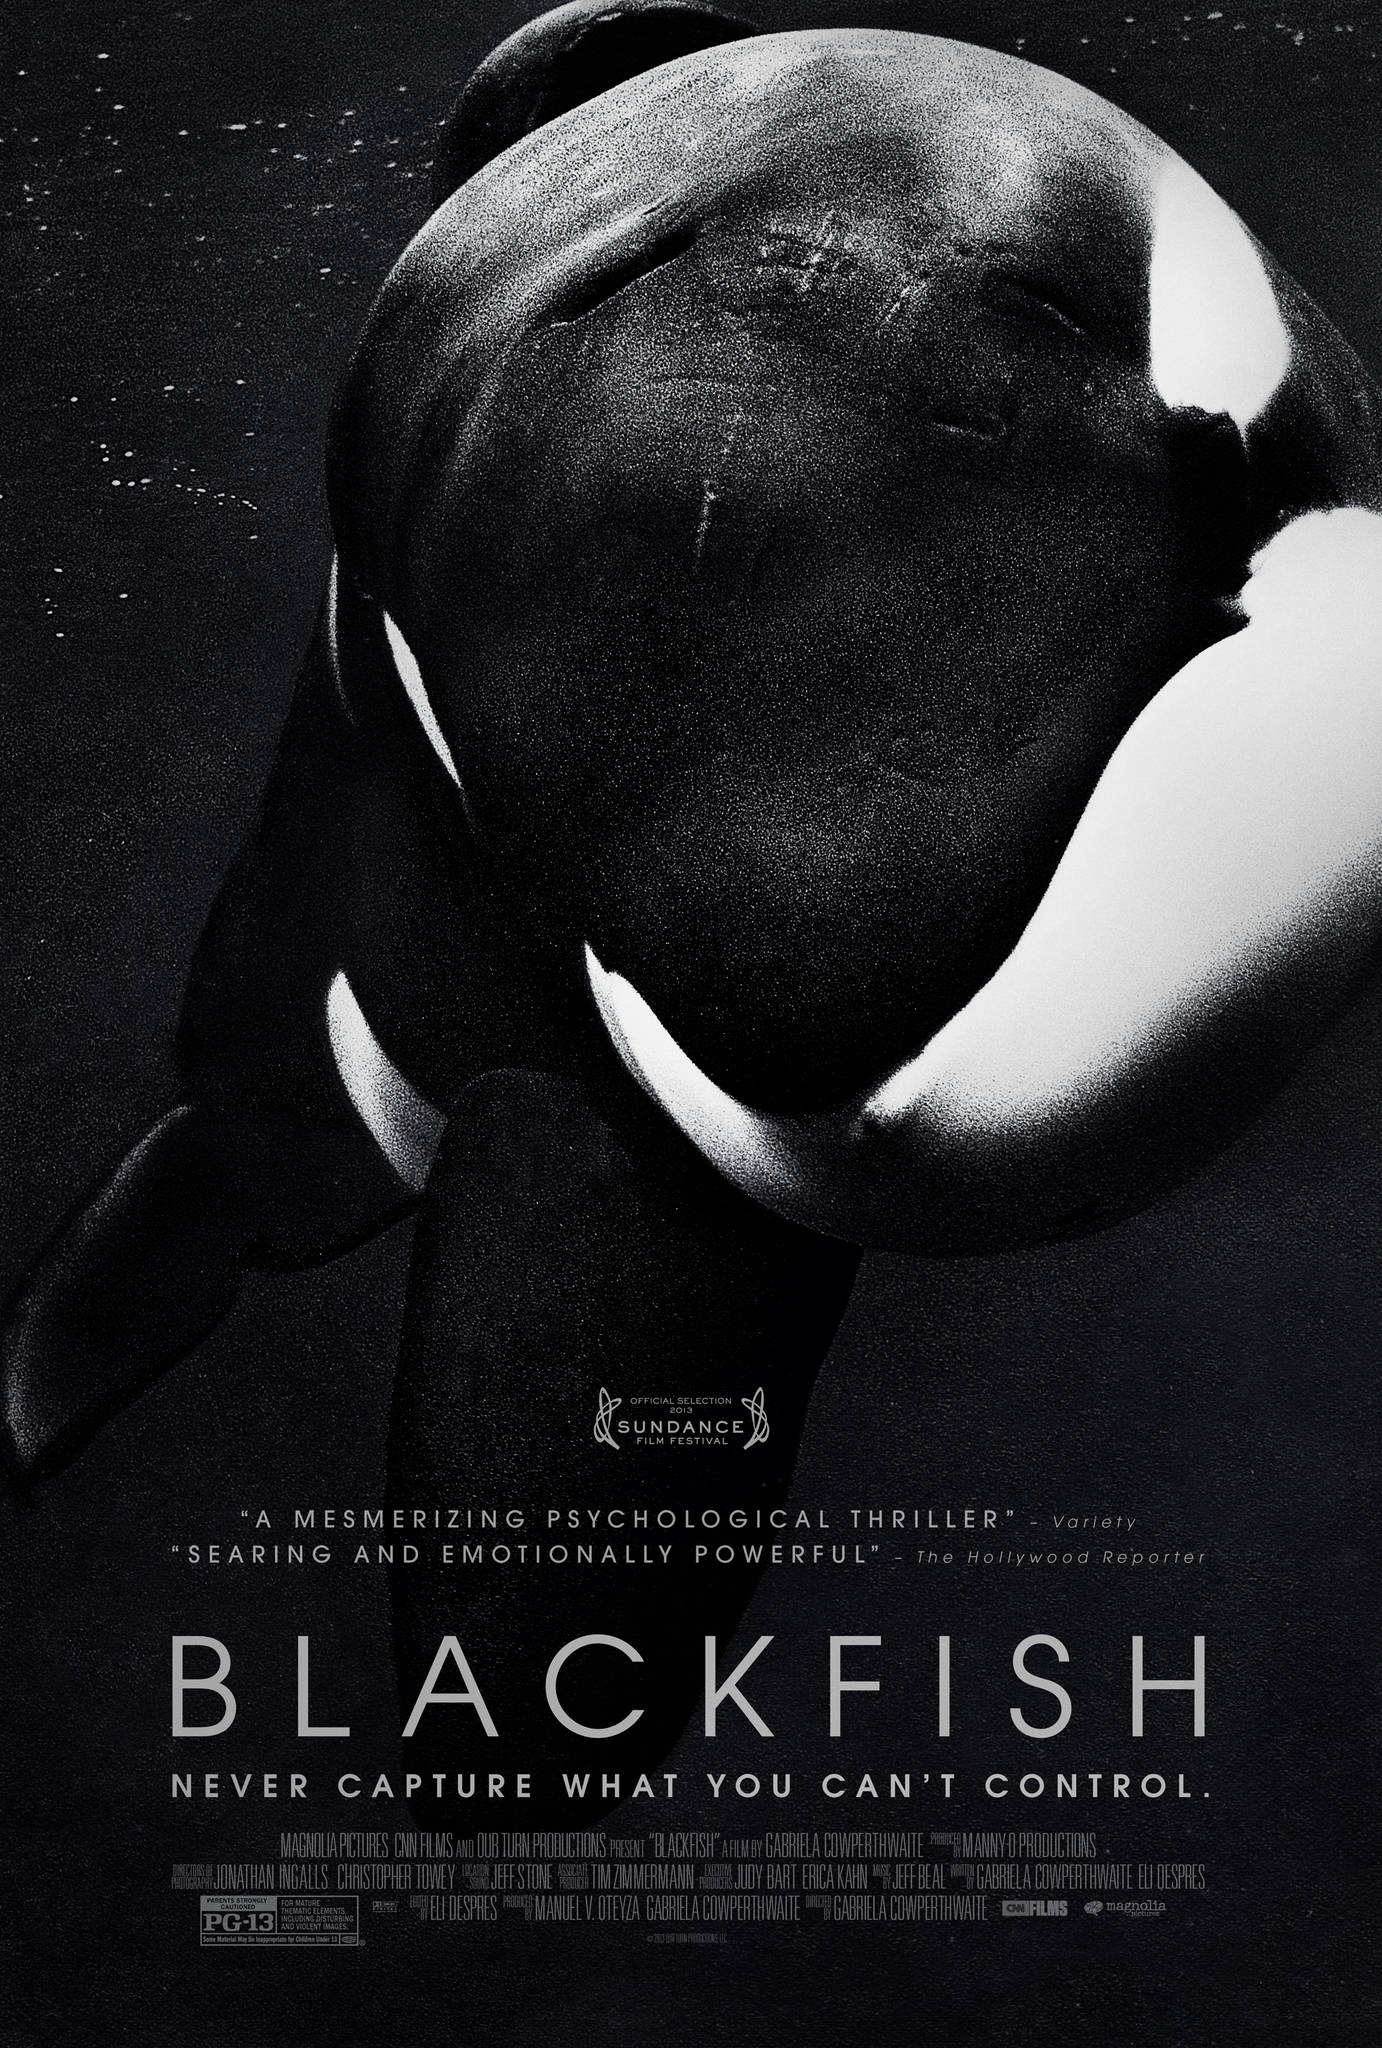 Poster pf 'Blackfish', story of a whale who killed people while in captivity.